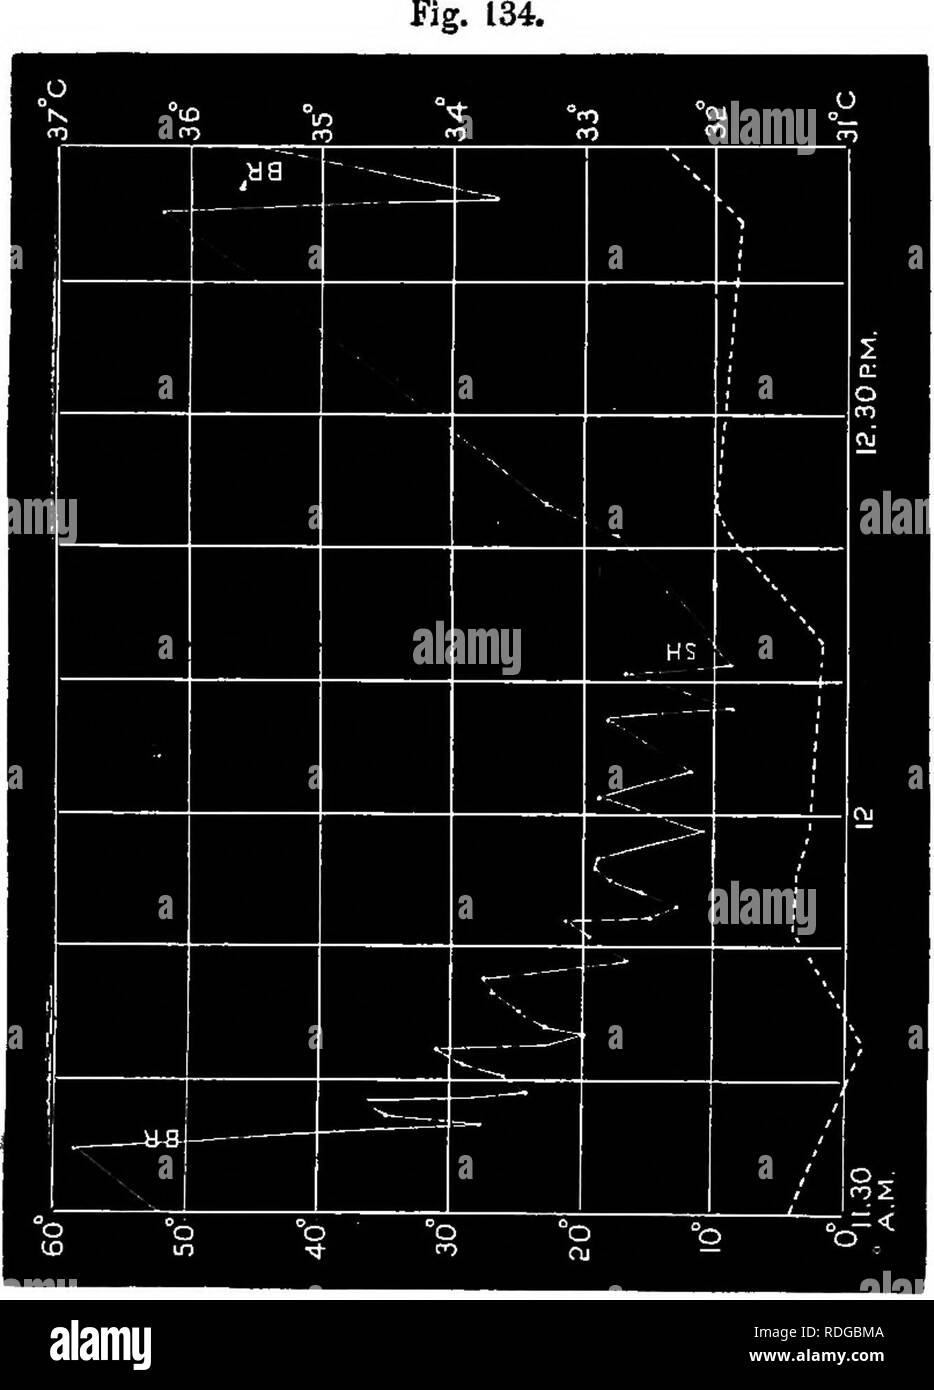 . The power of movement in plants . Plants; Botany. Chap. VII. SLEEP OF LEAVES. 333 shown in Fig. 135. The temperature began to rise at 11.35 A.M. (in consequence of the fire being lighted), but by 12.42 a marked fall had occurred. It may be seen in the diagram that when the temperature was highest there were rapid oscillations. Averrhoa hilimbi; ansinlar movements of leaflet during a change from bright illumination to shade ; temperature (broken line) remaining nearly the same. of small amplitude, the mean position of the leaflet being at the time nearer the vertical. When the temperature beg - Stock Image